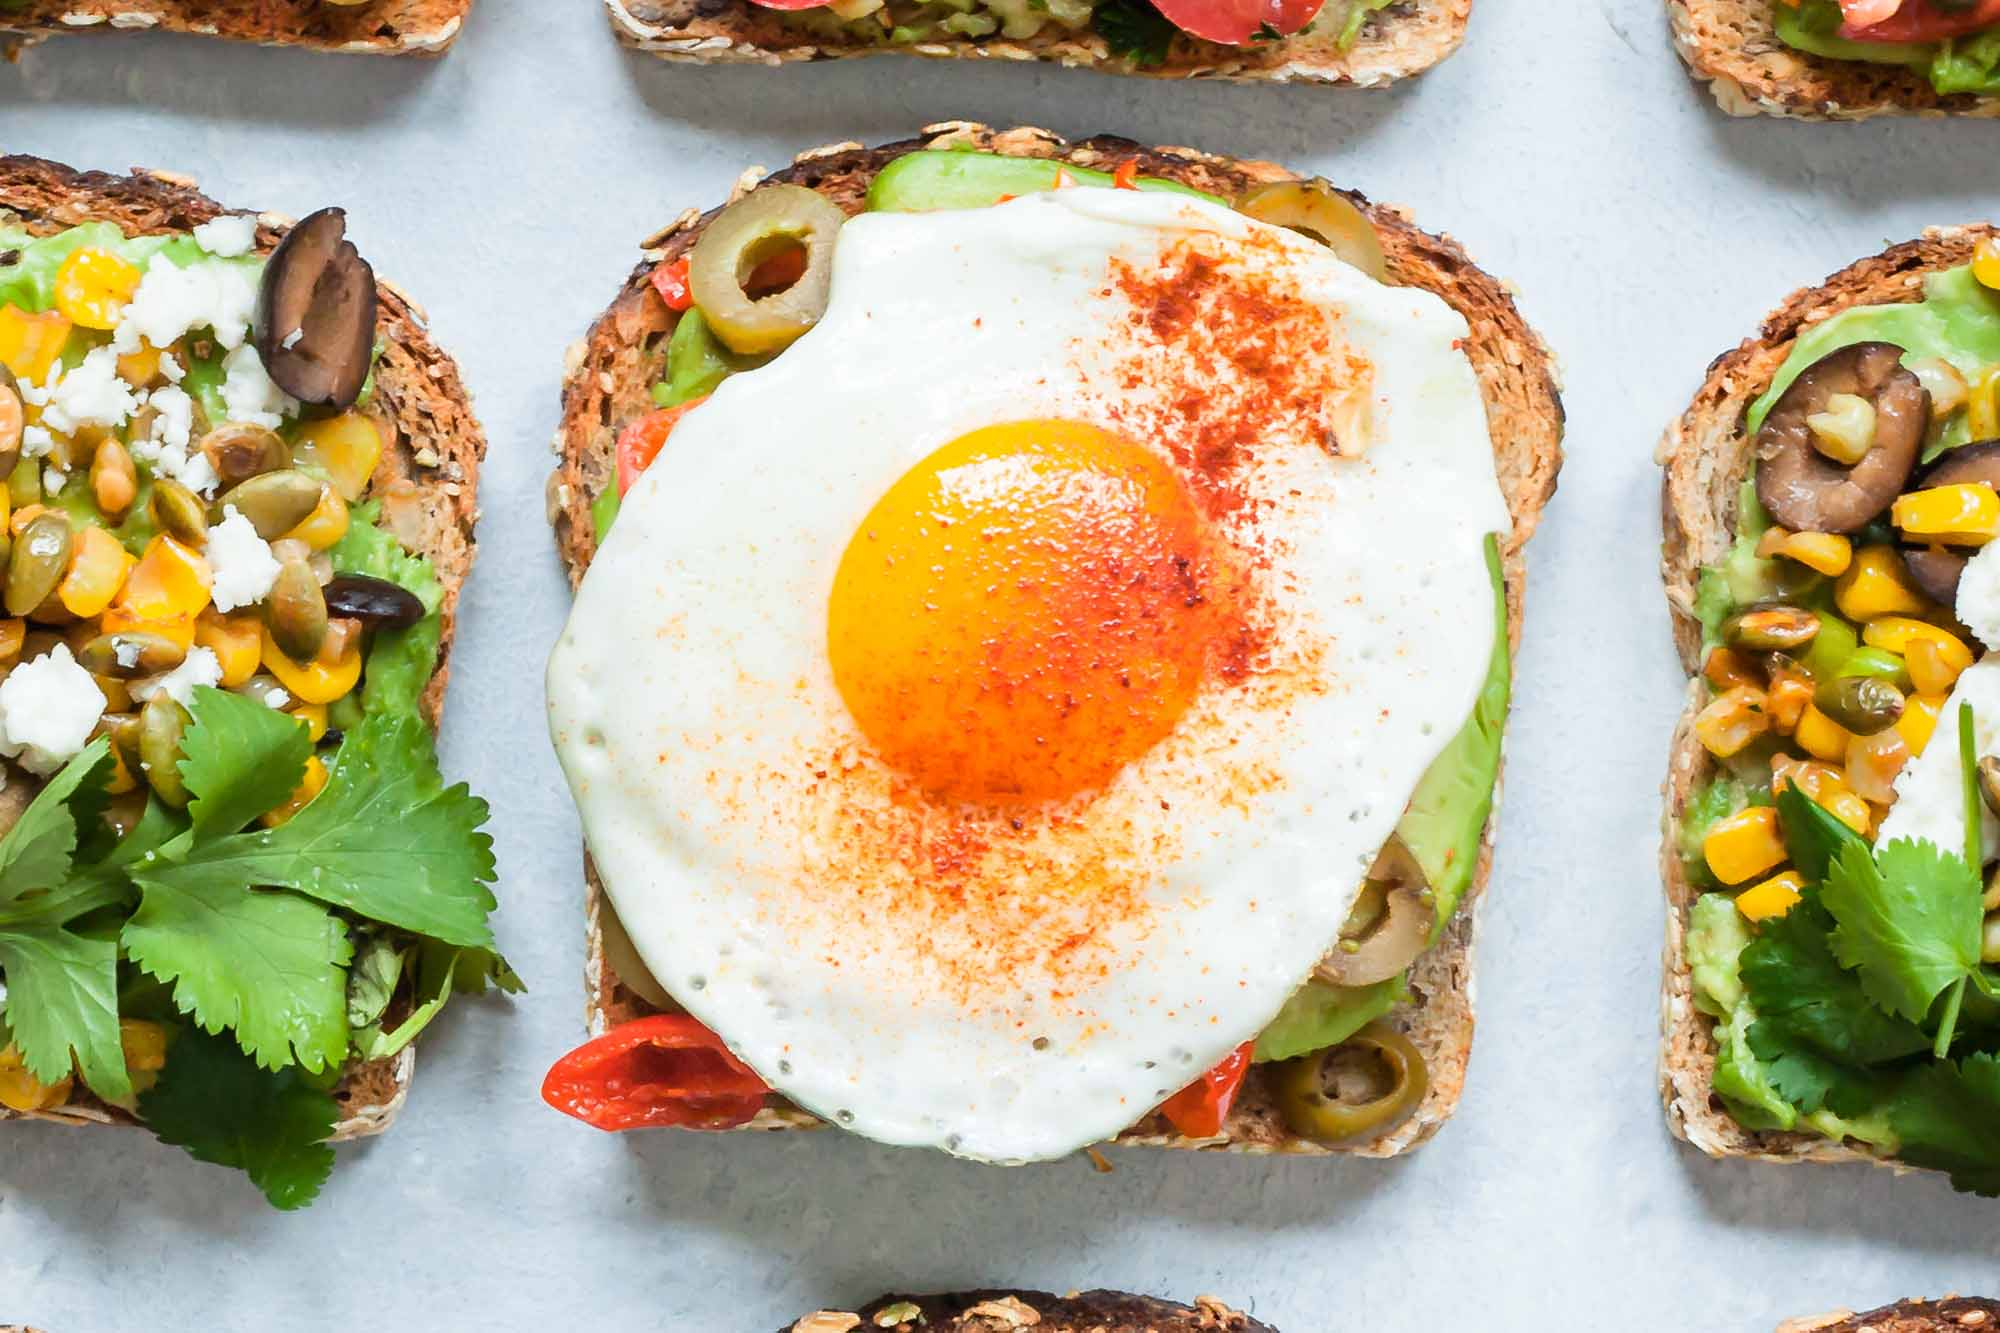 Avocado Toasts with Fried Egg, Olives, and Smoked Paprika